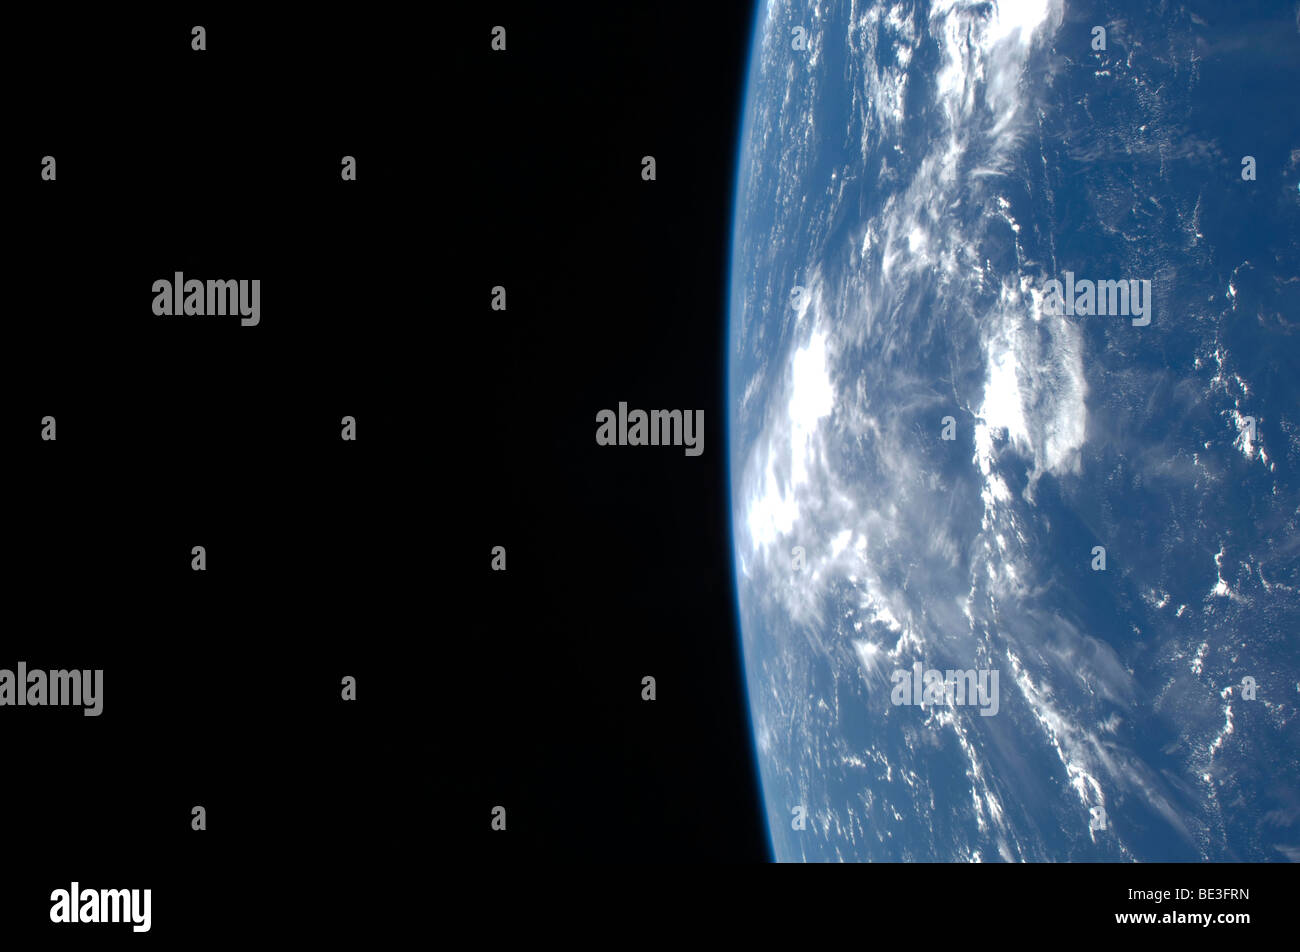 Earth's horizon and the blackness of space. - Stock Image